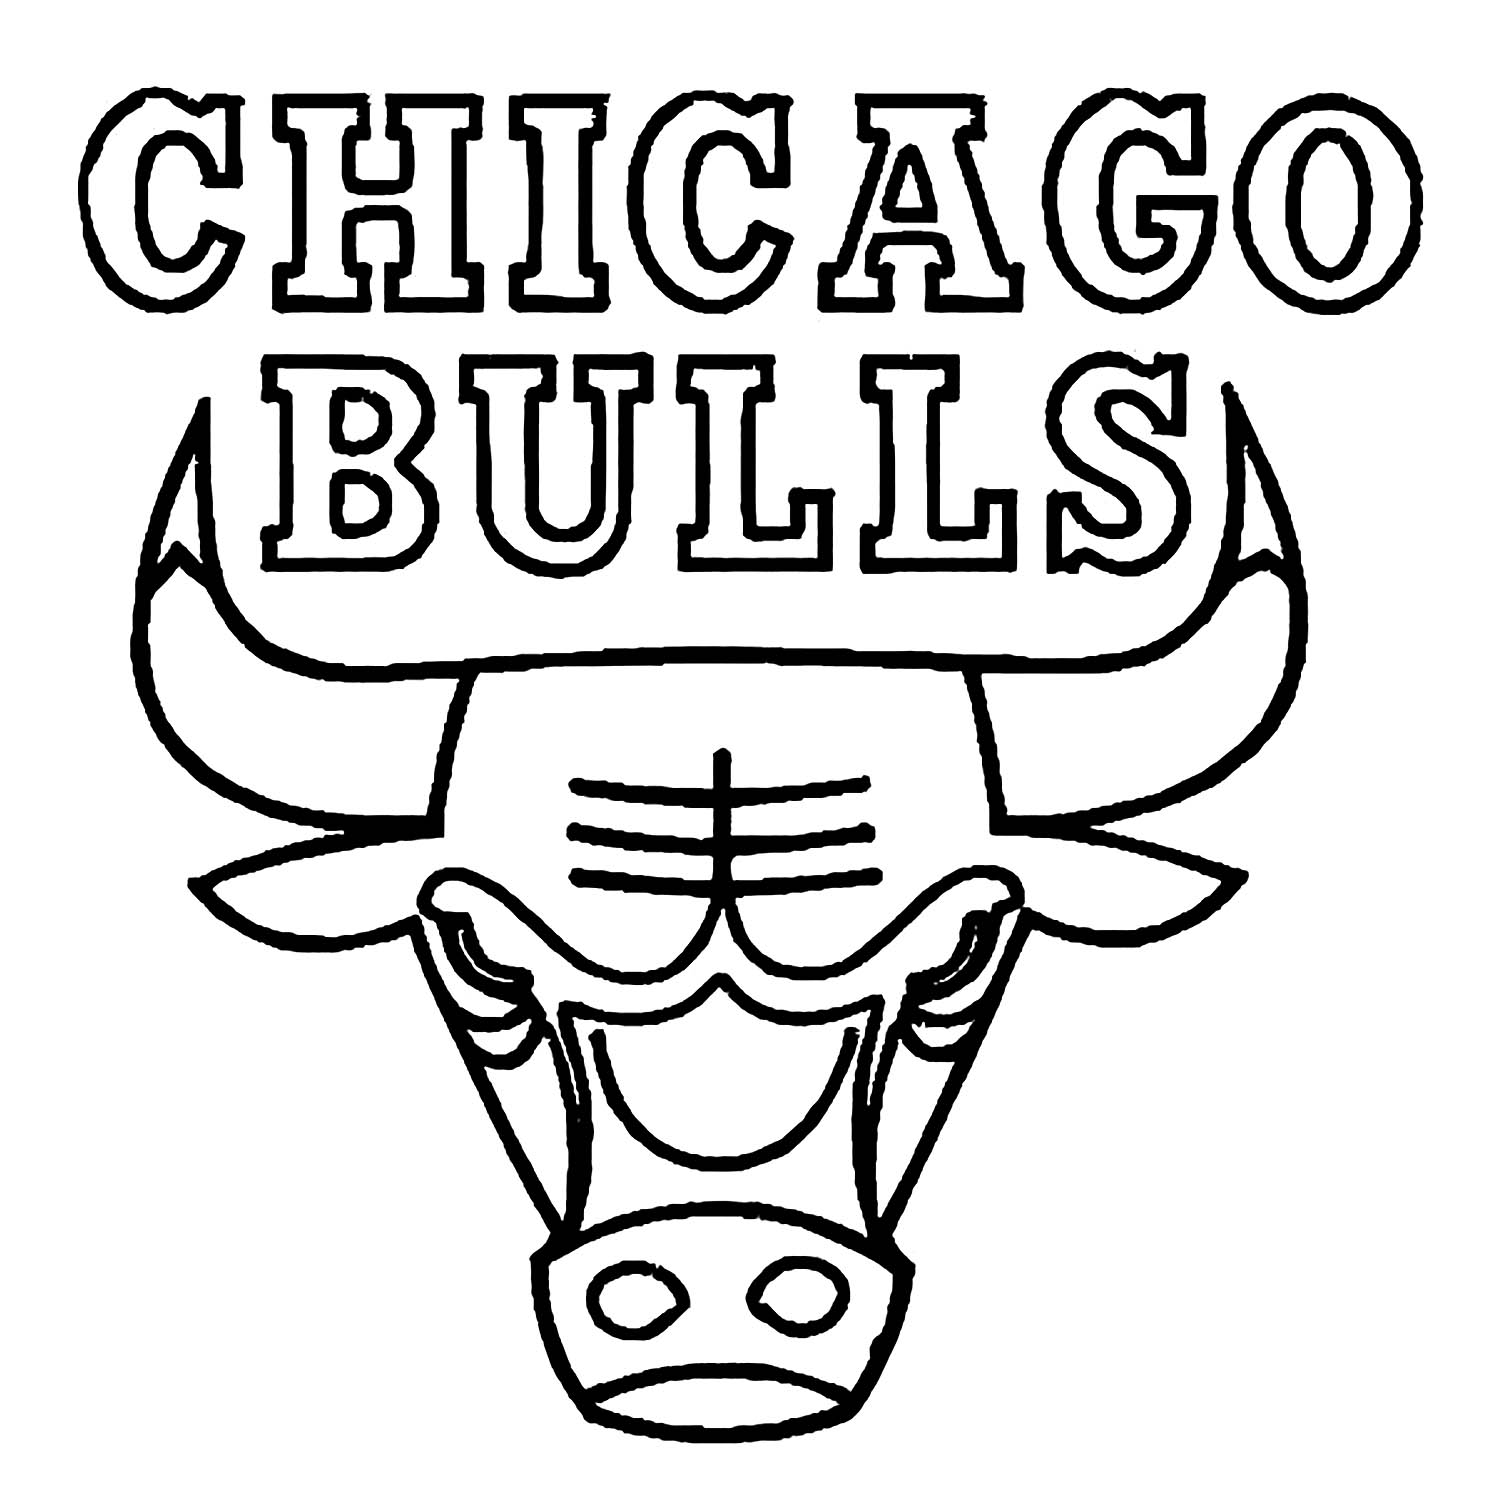 chicago bulls coloring pages chicago bulls coloring sheets coloring pages chicago coloring pages bulls